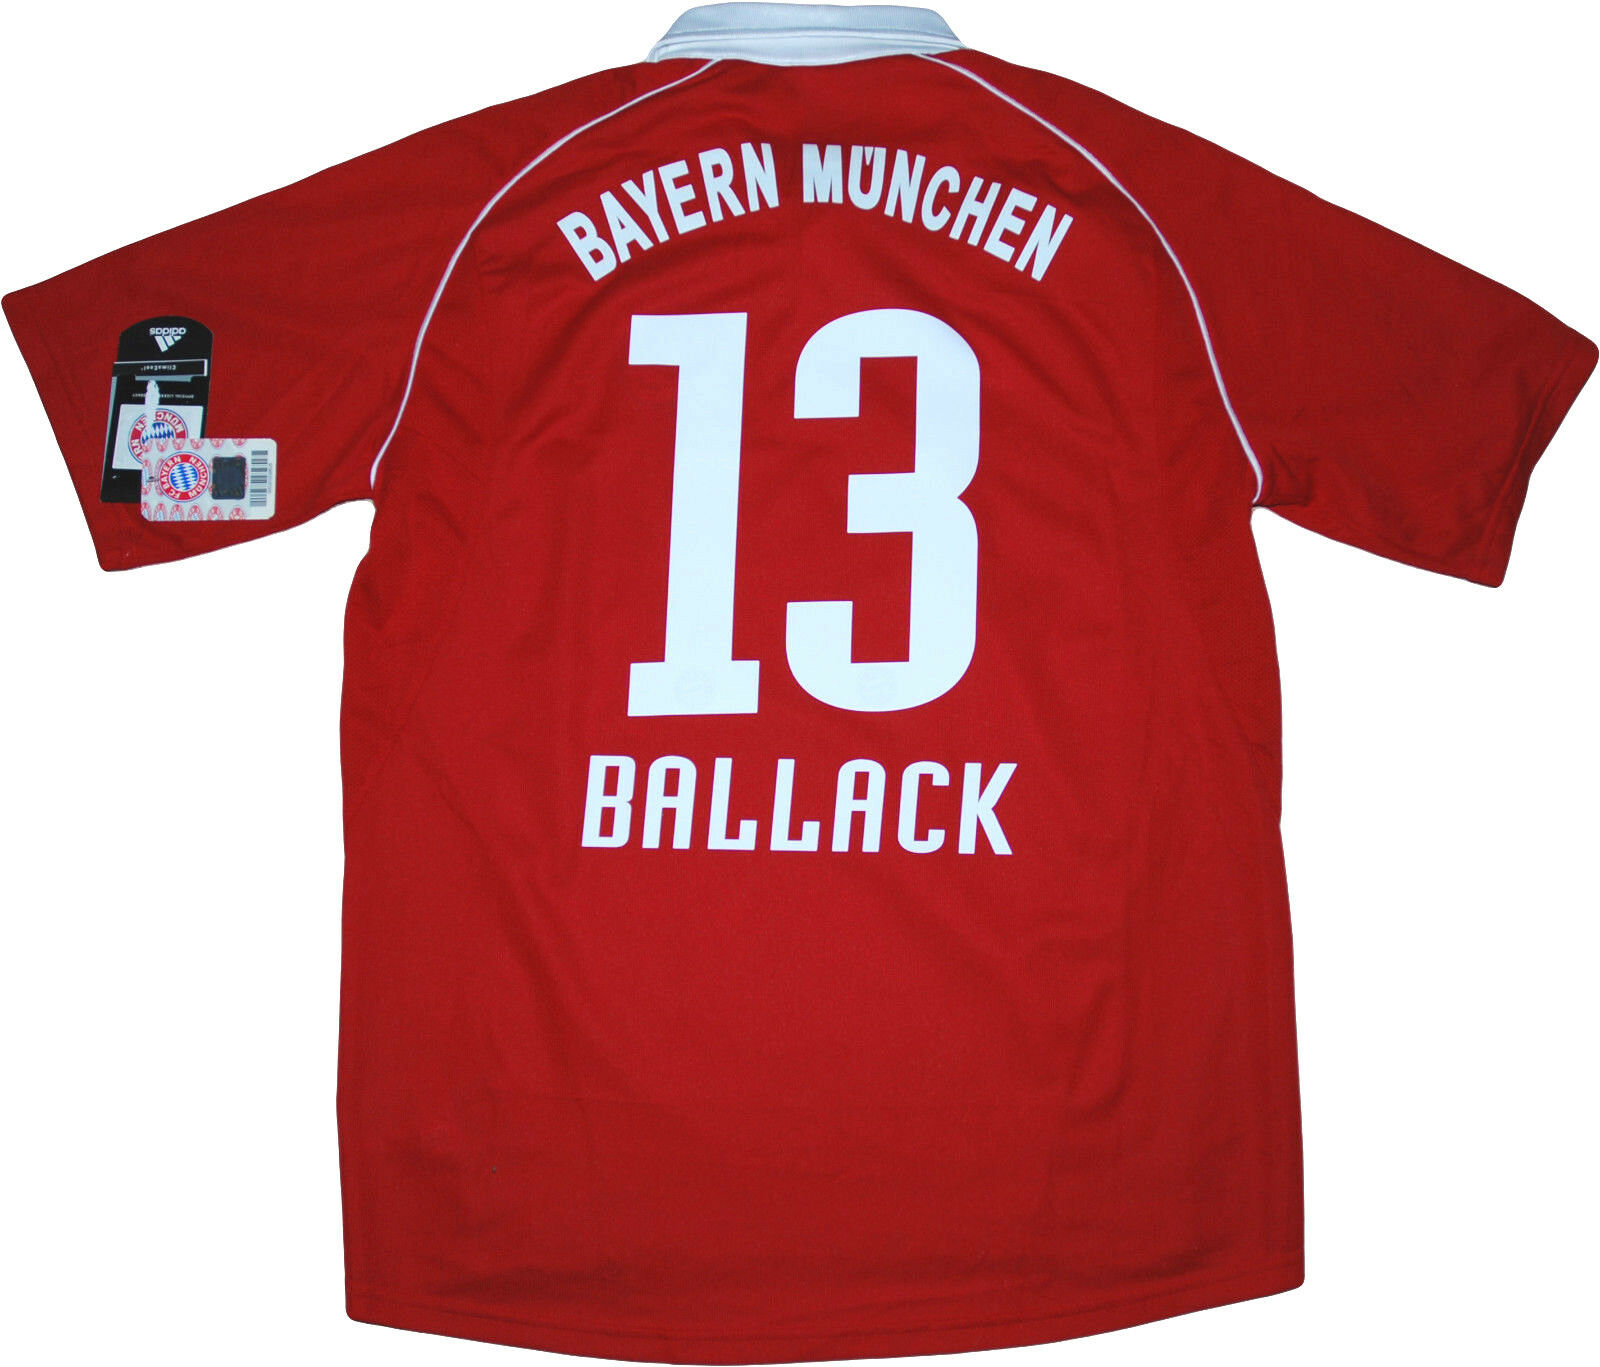 Maglia Bayern Monaco Btuttiack Vintage Adidas 2005 2006 UCL home shirt Jersey Home